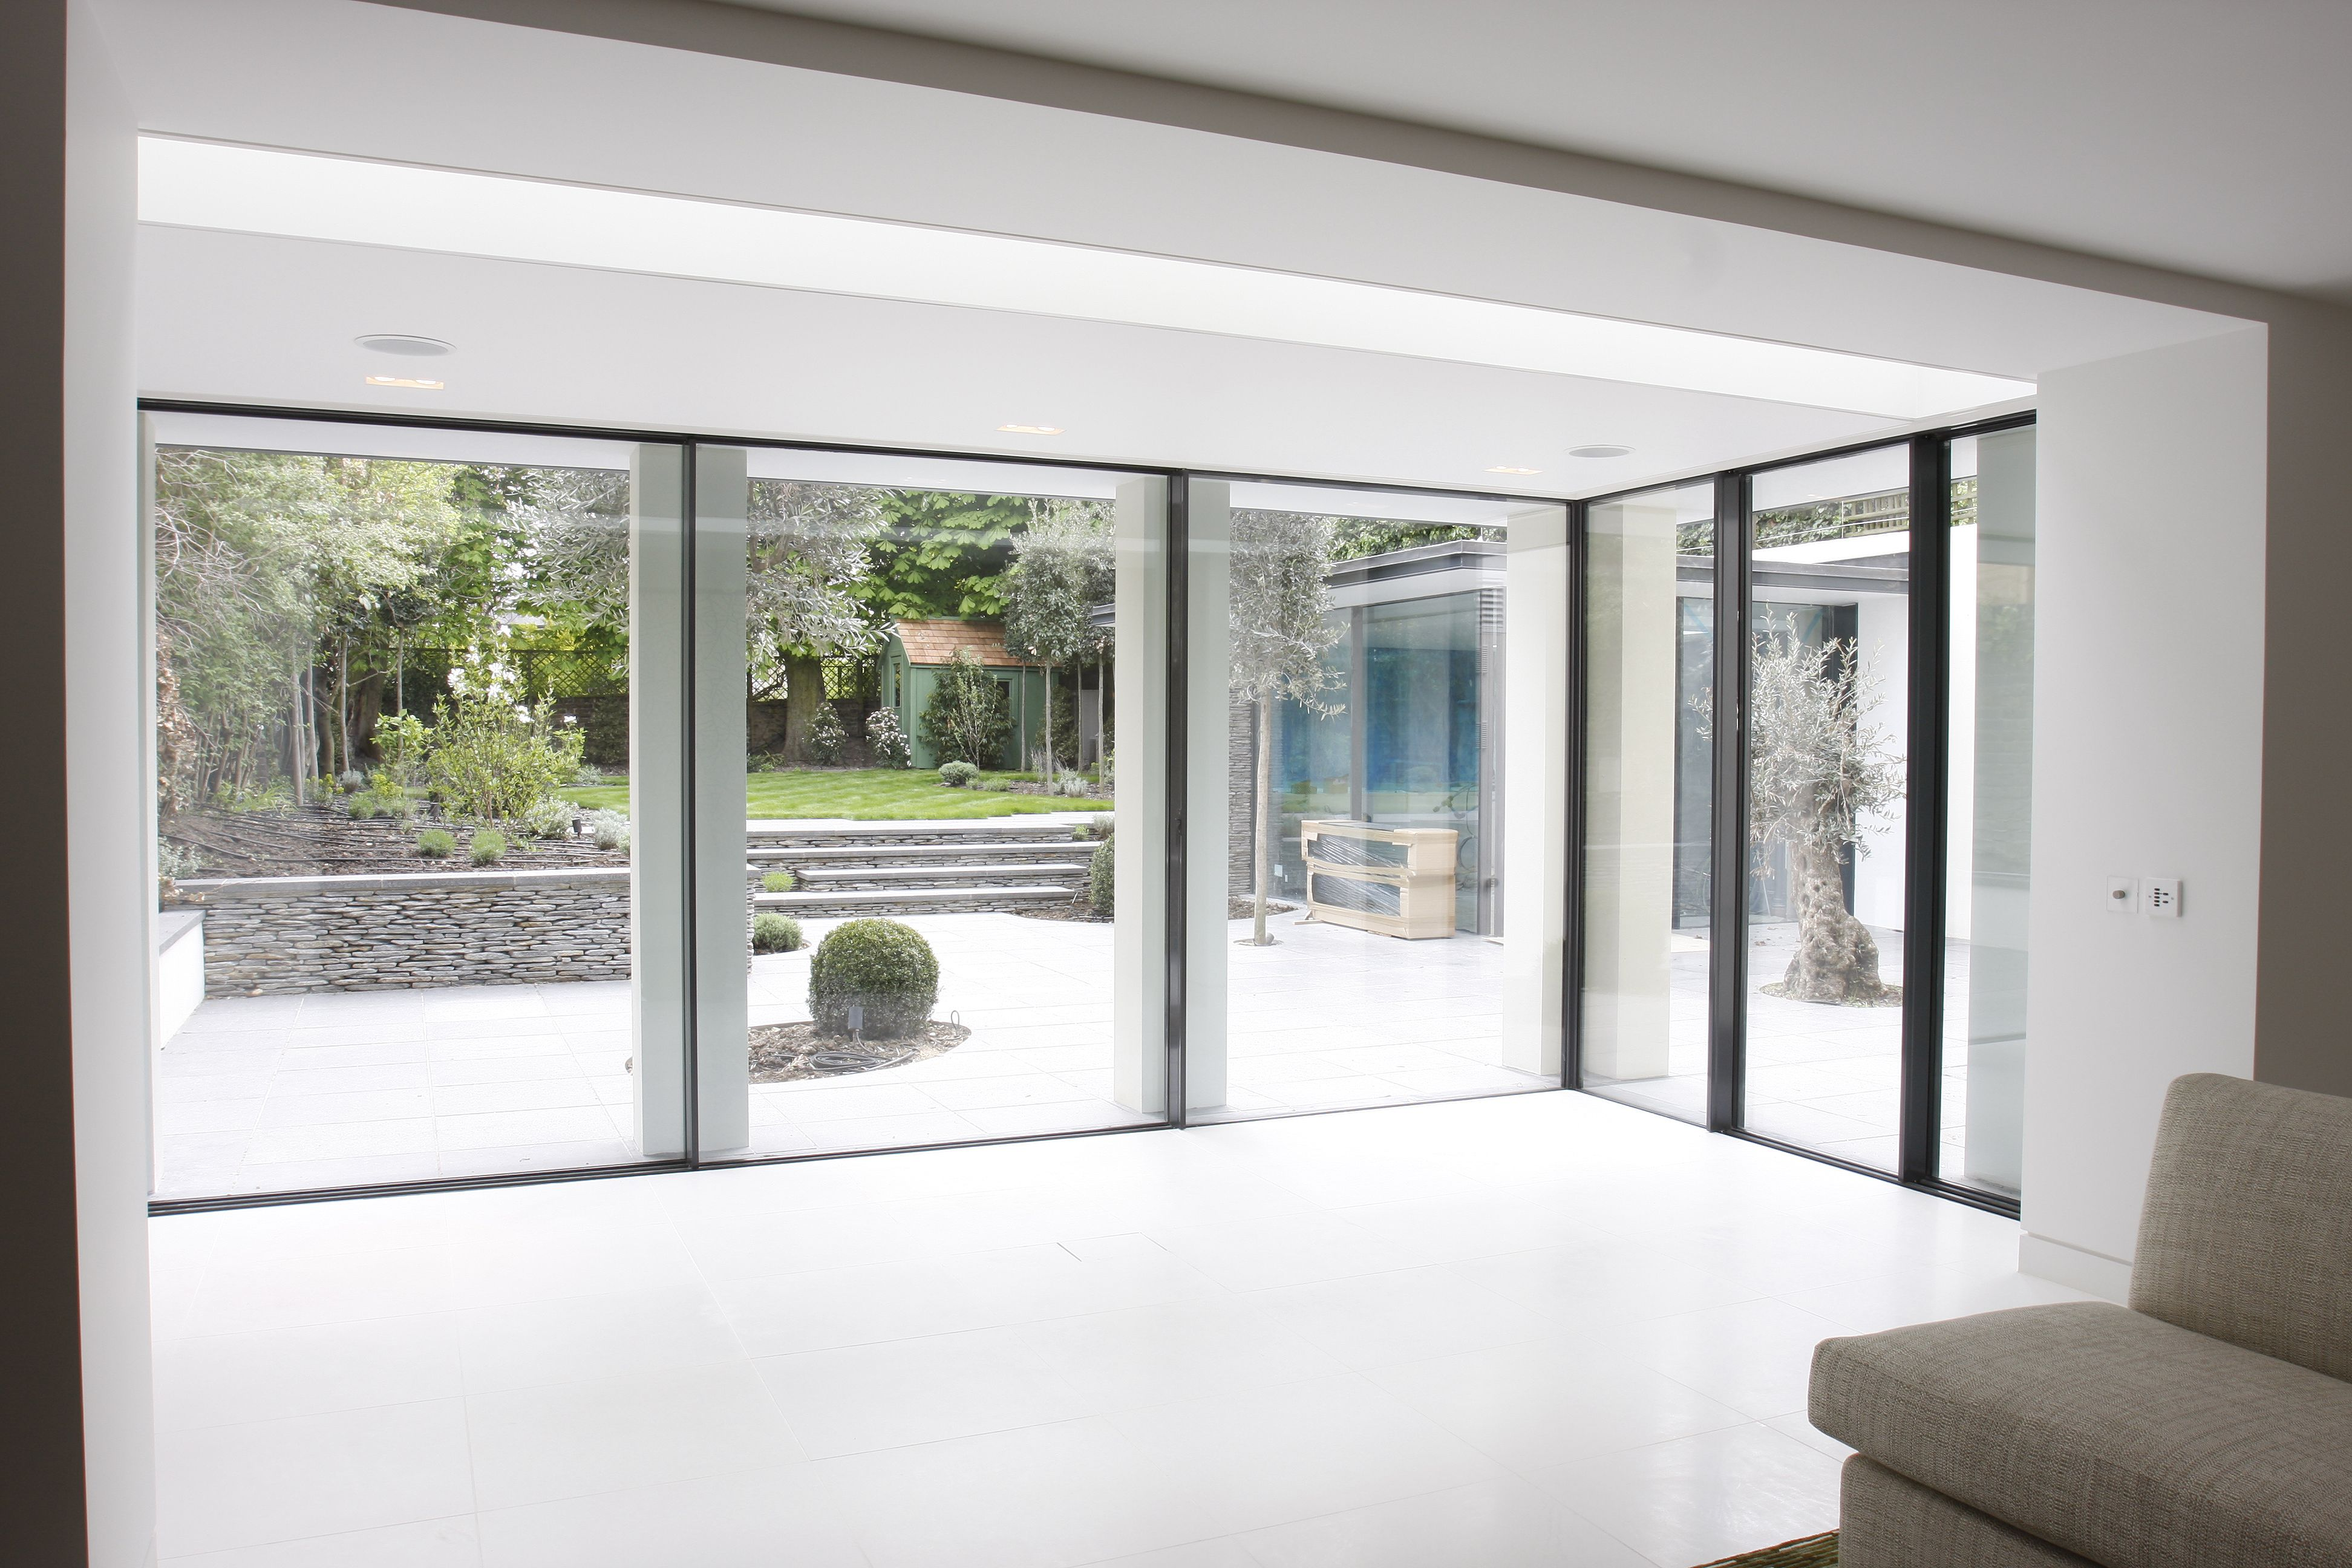 Exterior residential windows - Minimal Windows Installed By Iq Glass At This Residential Project